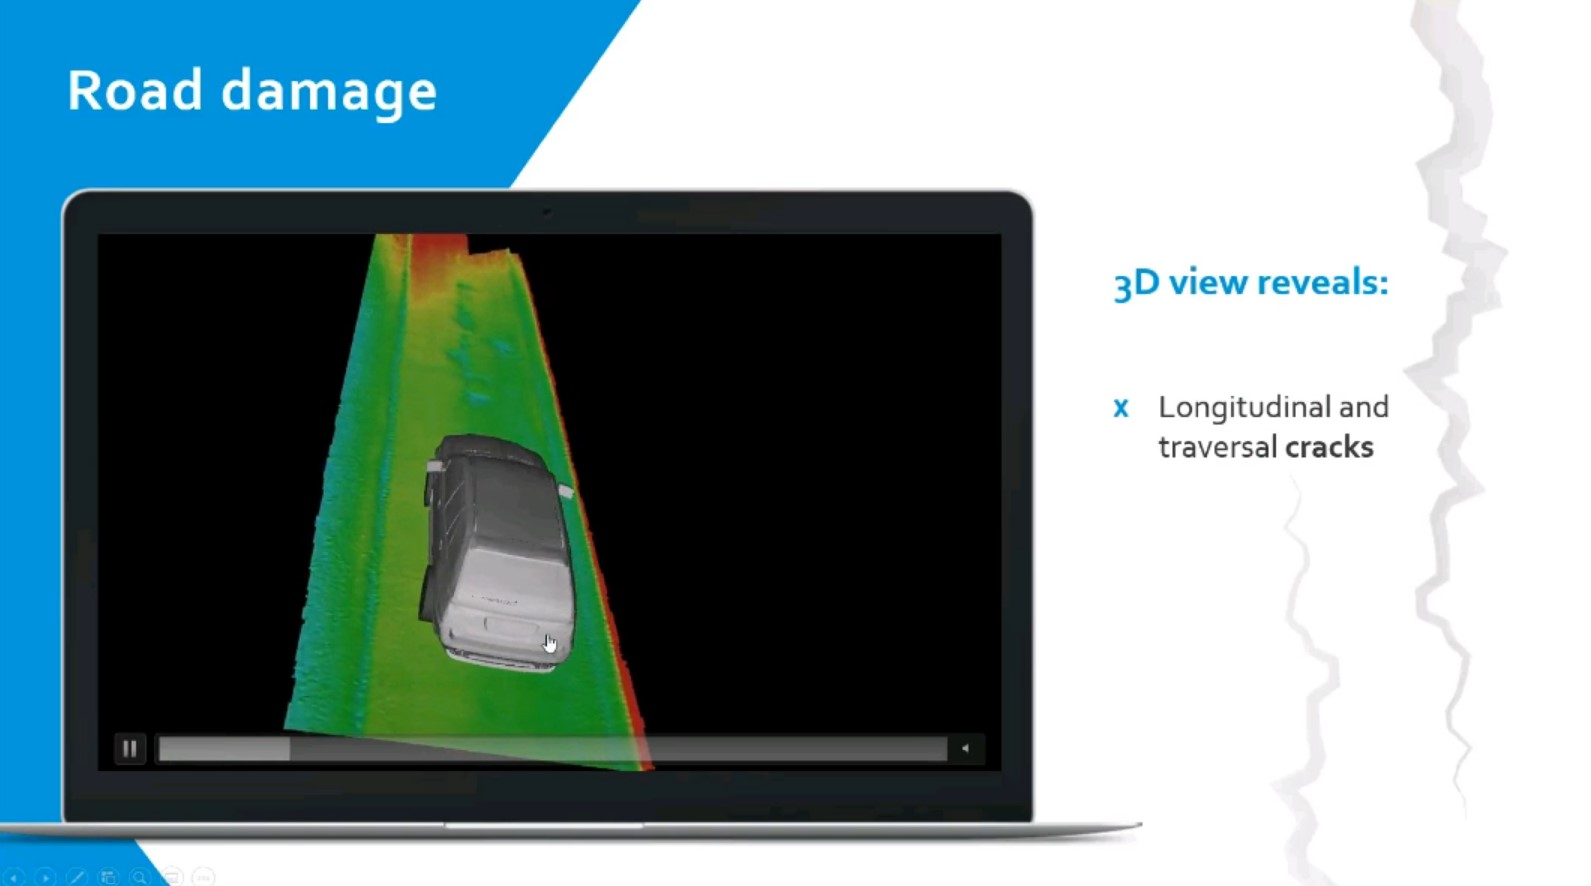 A Live Demo of highly accurate Road Digitization for Automotive Applications